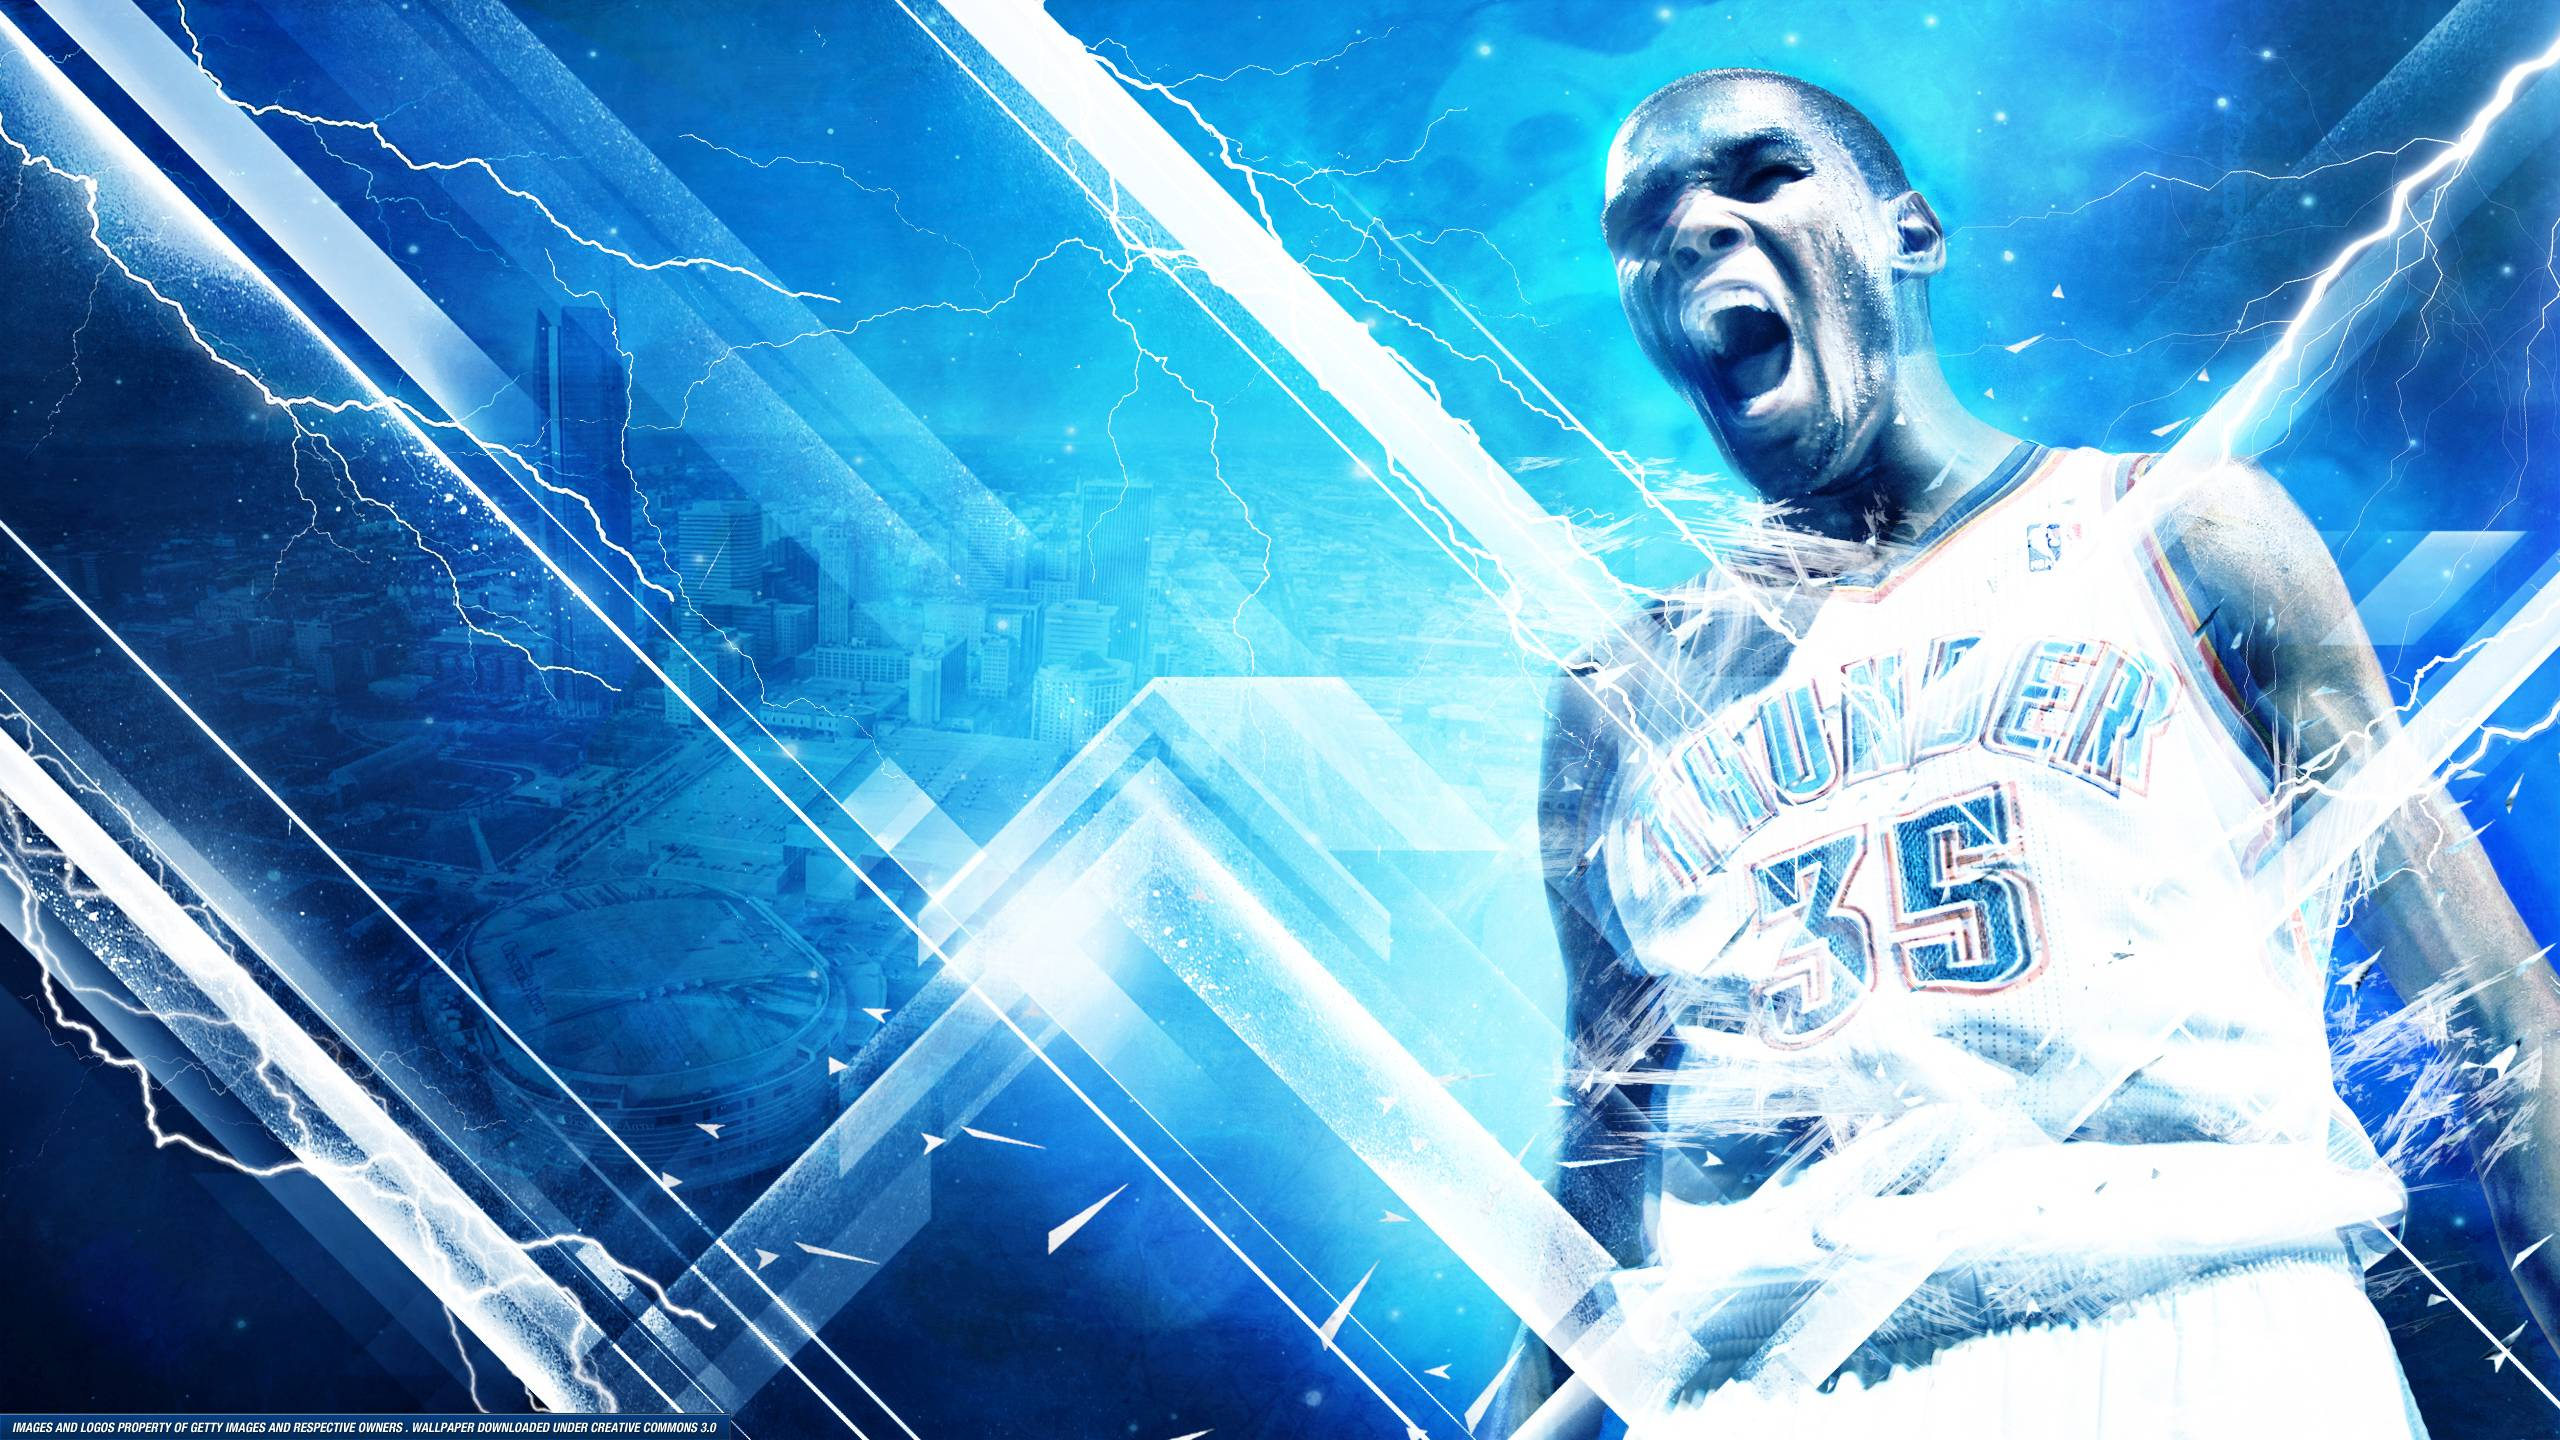 Kevin Durant Wallpapers Wallpaper Cave HD Wallpapers Download Free Images Wallpaper [1000image.com]